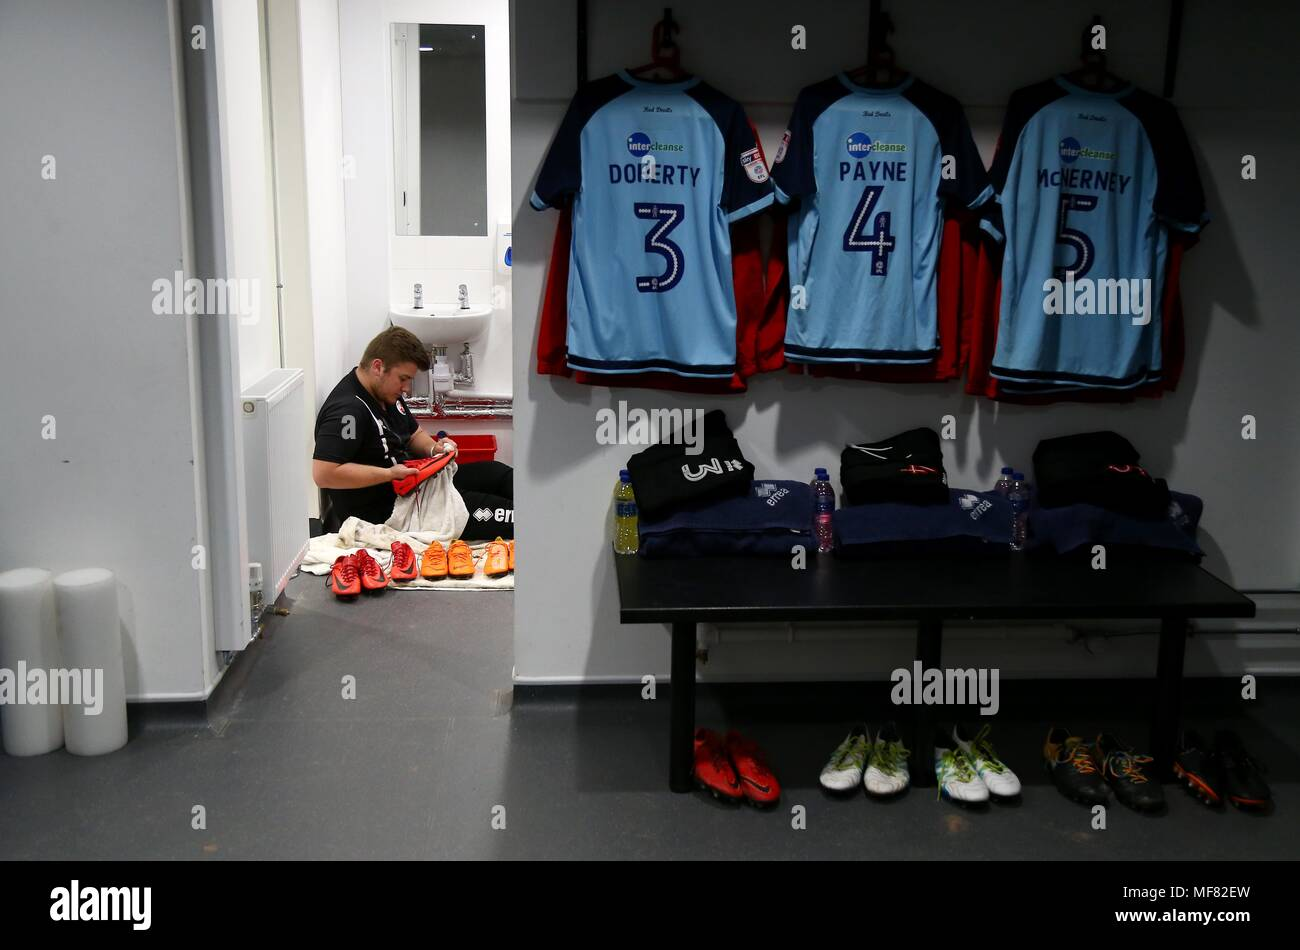 Dave the Crawley Town Kit Man cleans football boots before the Sky Bet League 2 match between Exeter City and Crawley Town at St James Park in Exeter. 21 Apr 2018  EDITORIAL USE ONLY FA Premier League and Football League images are subject to DataCo Licence see www.football-dataco.com - Stock Image